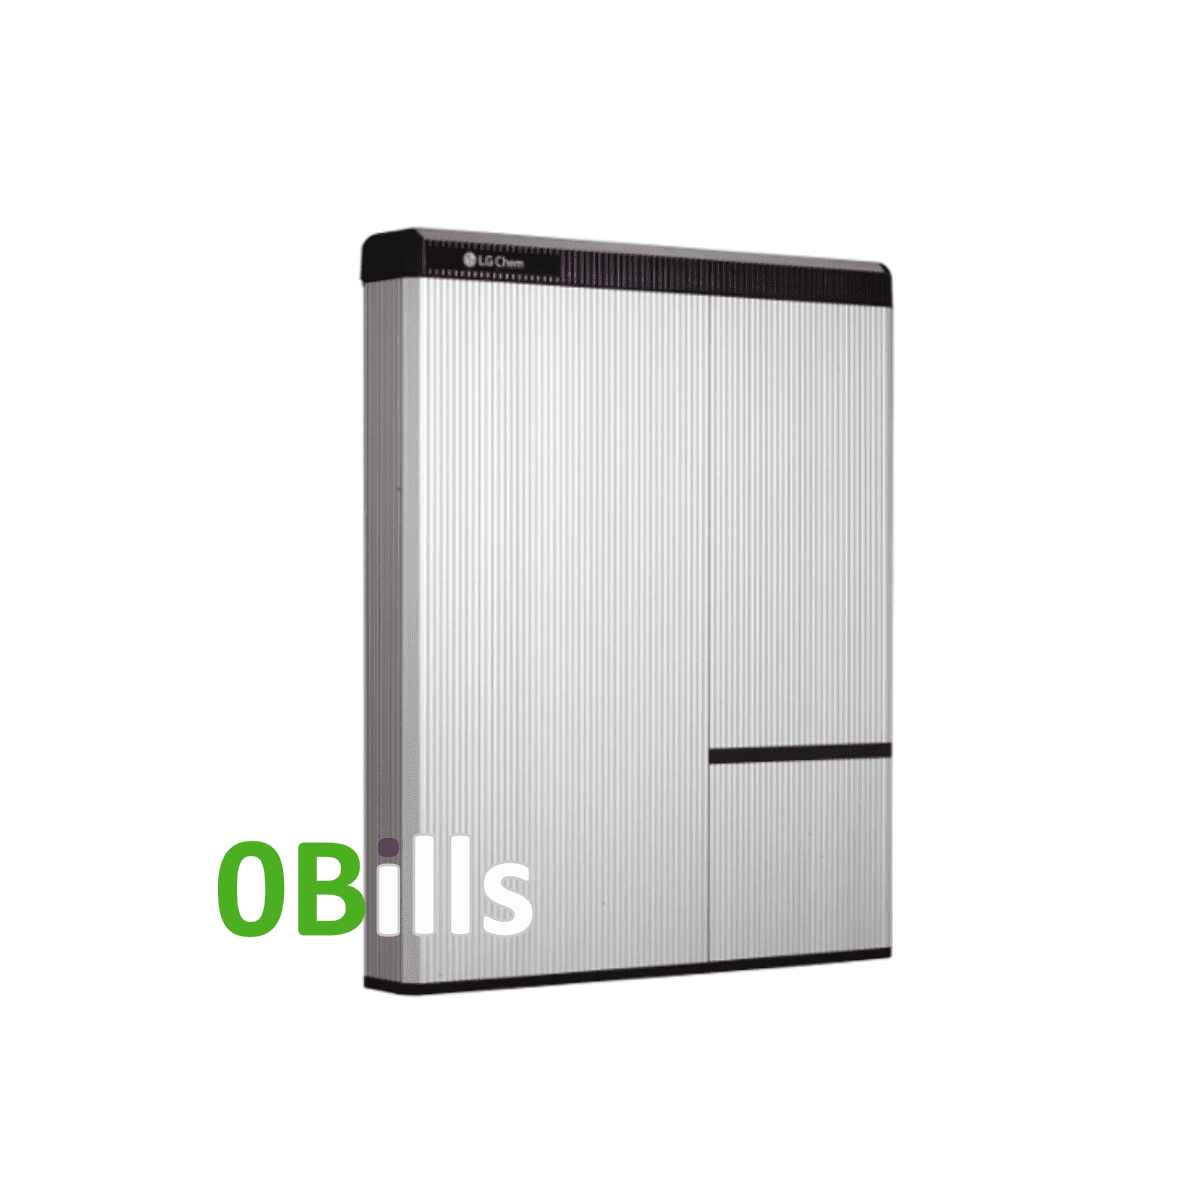 LG Chem RESU 10H High Voltage (400V) 9.3kW Battery Storage (SolarEdge)